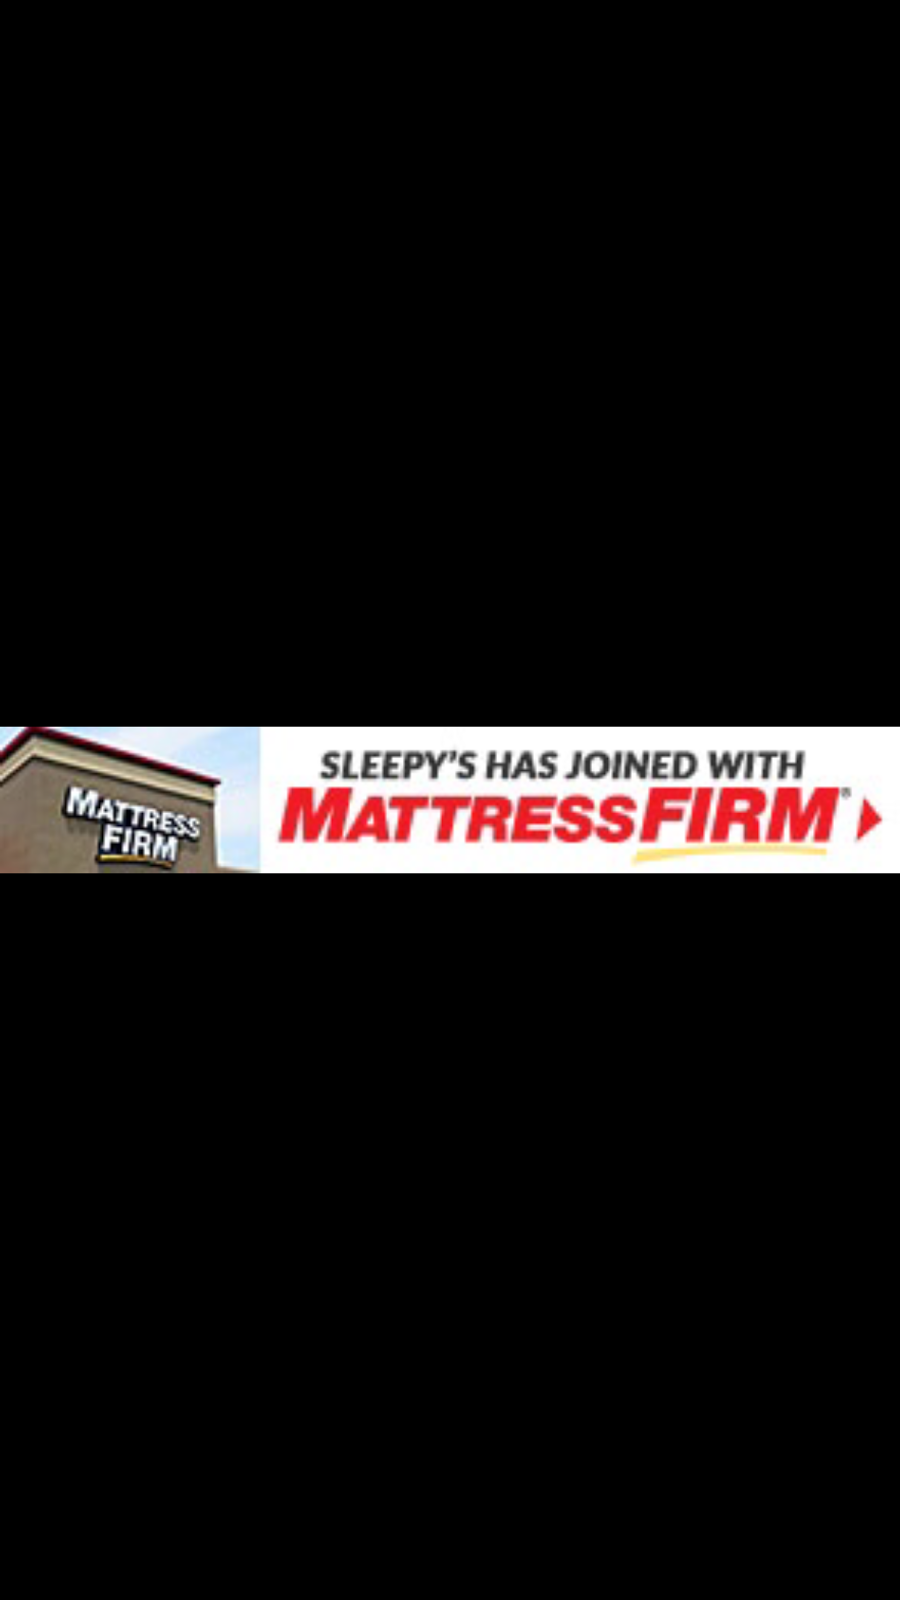 Mattress Firm Valley Stream - furniture store    Photo 4 of 4   Address: 450 W Sunrise Hwy, Valley Stream, NY 11581, USA   Phone: (516) 568-3900